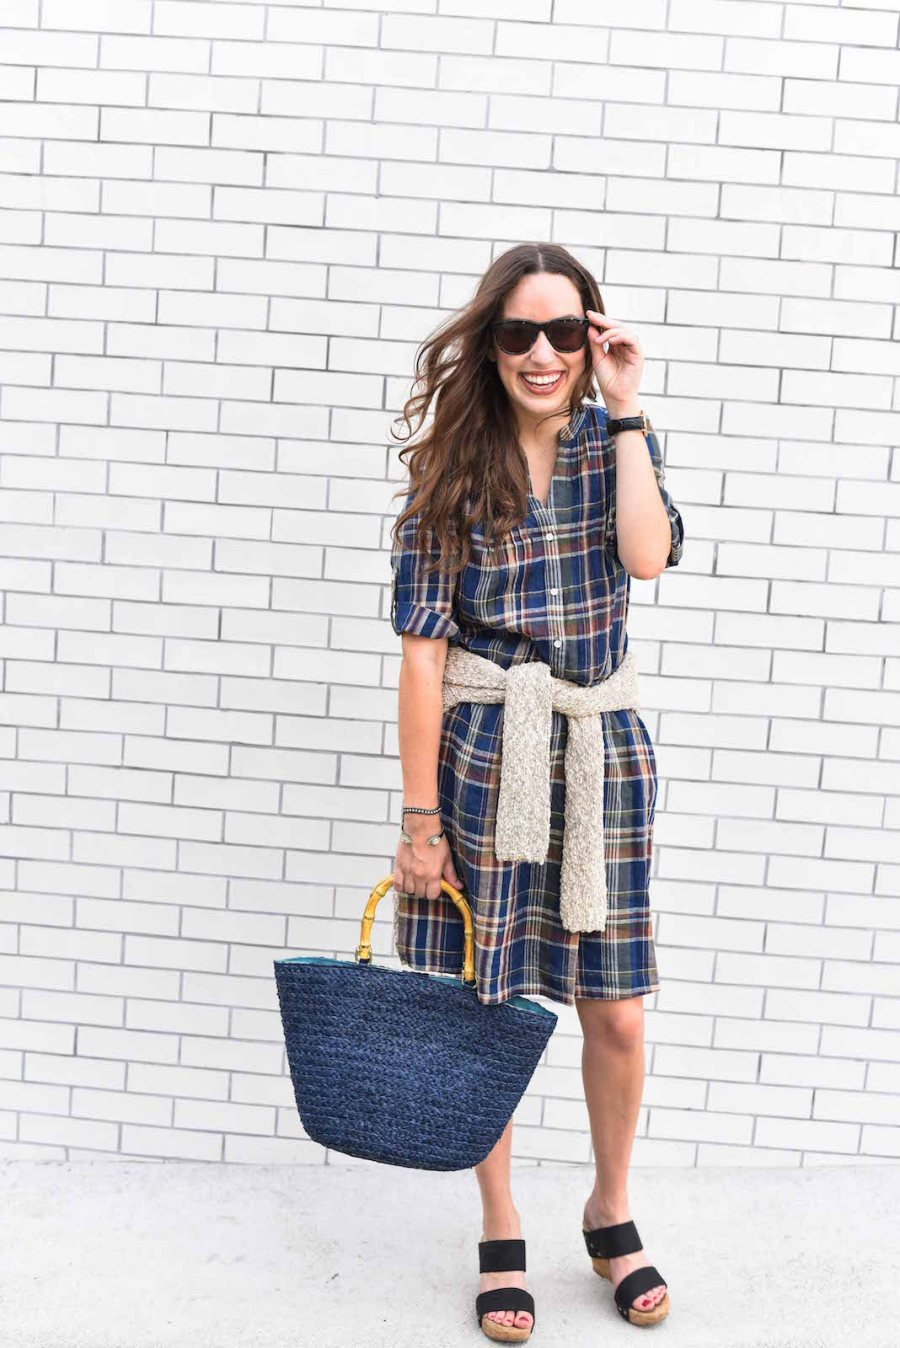 jmclaughlin plaid dress, fall transitional outfits, what to wear between summer and fall, navy bamboo tote bag, jmclaughlin fall 2016